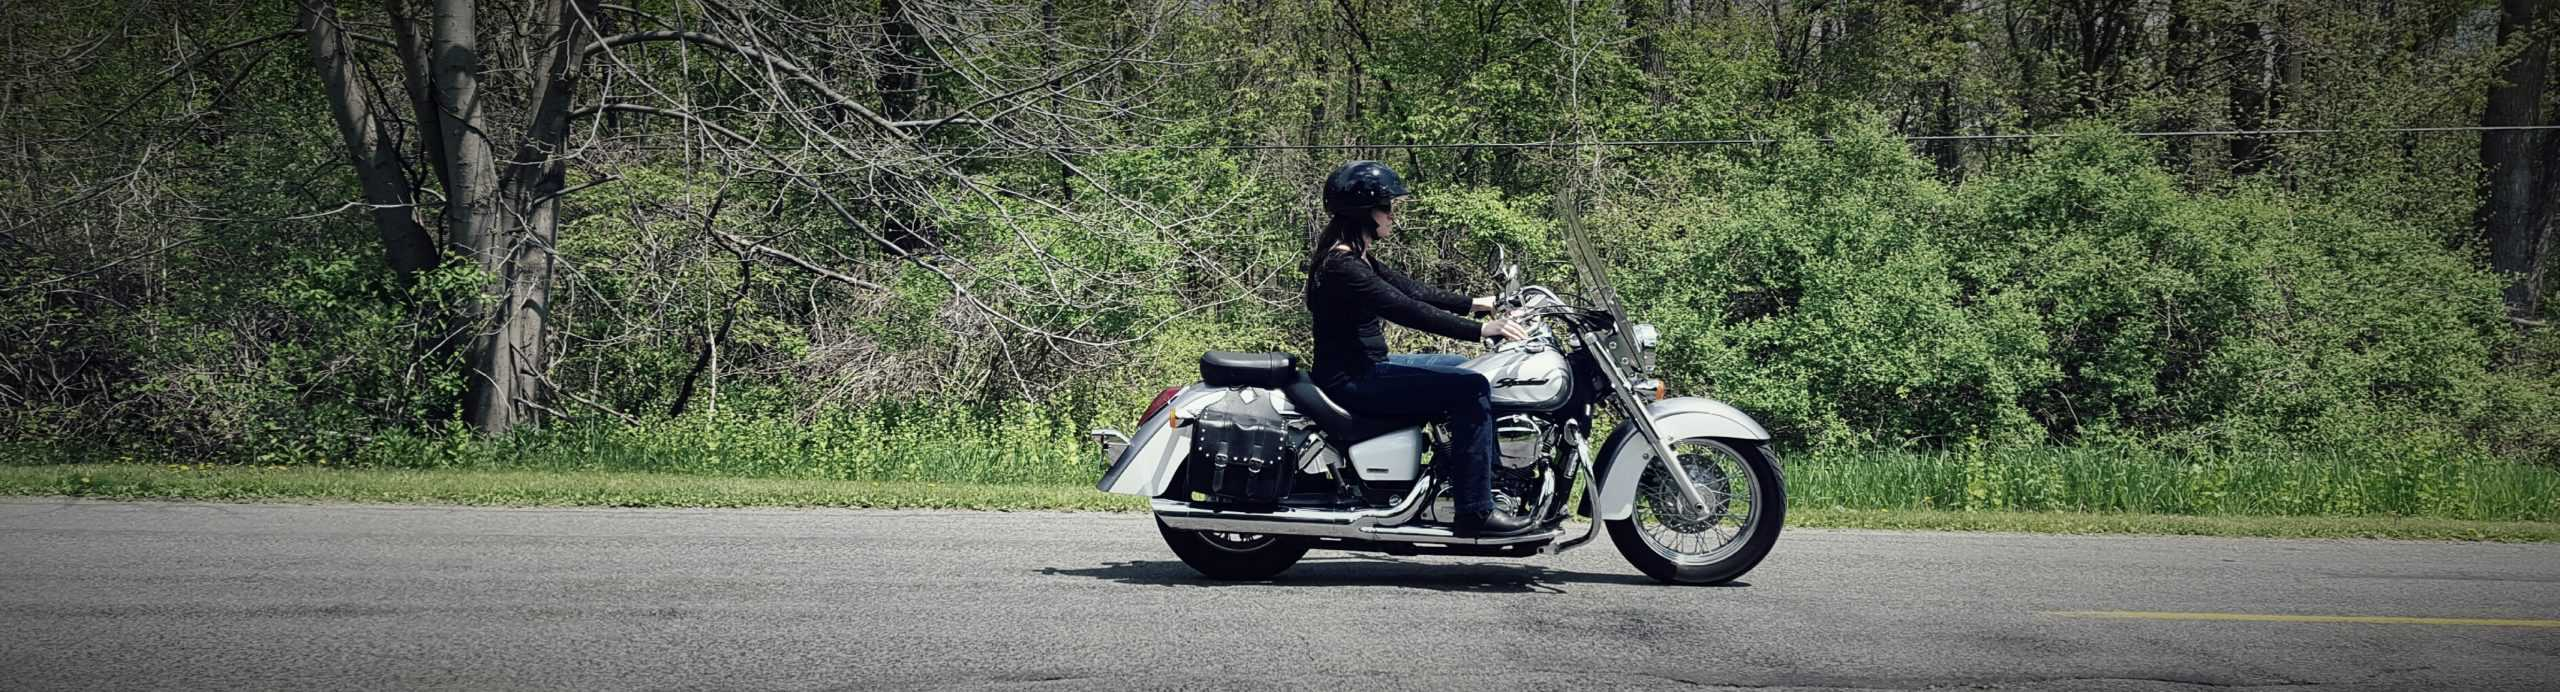 20160508 151628 scaled Michigan By Motorcycle Is Awesome